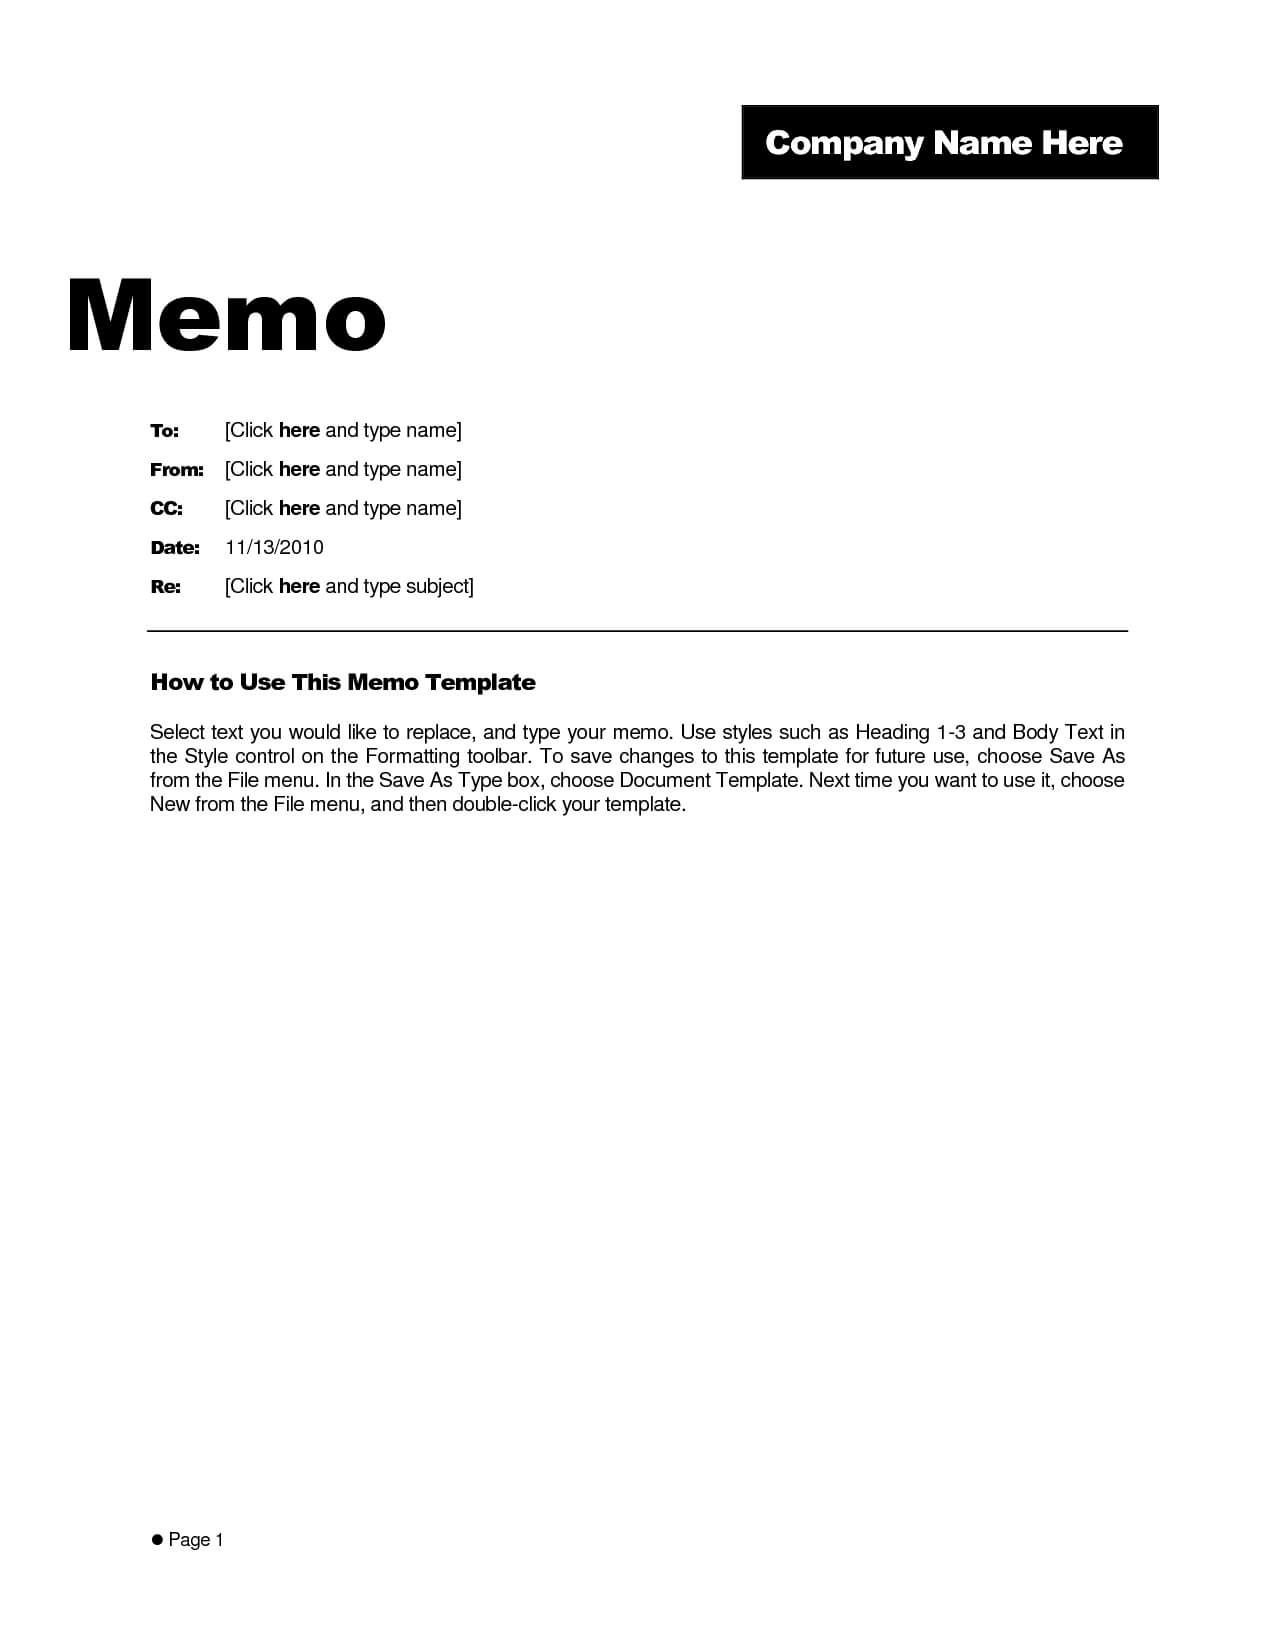 Microsoft Word Memo Template Example – Teplates For Every Day Intended For Memo Template Word 2010